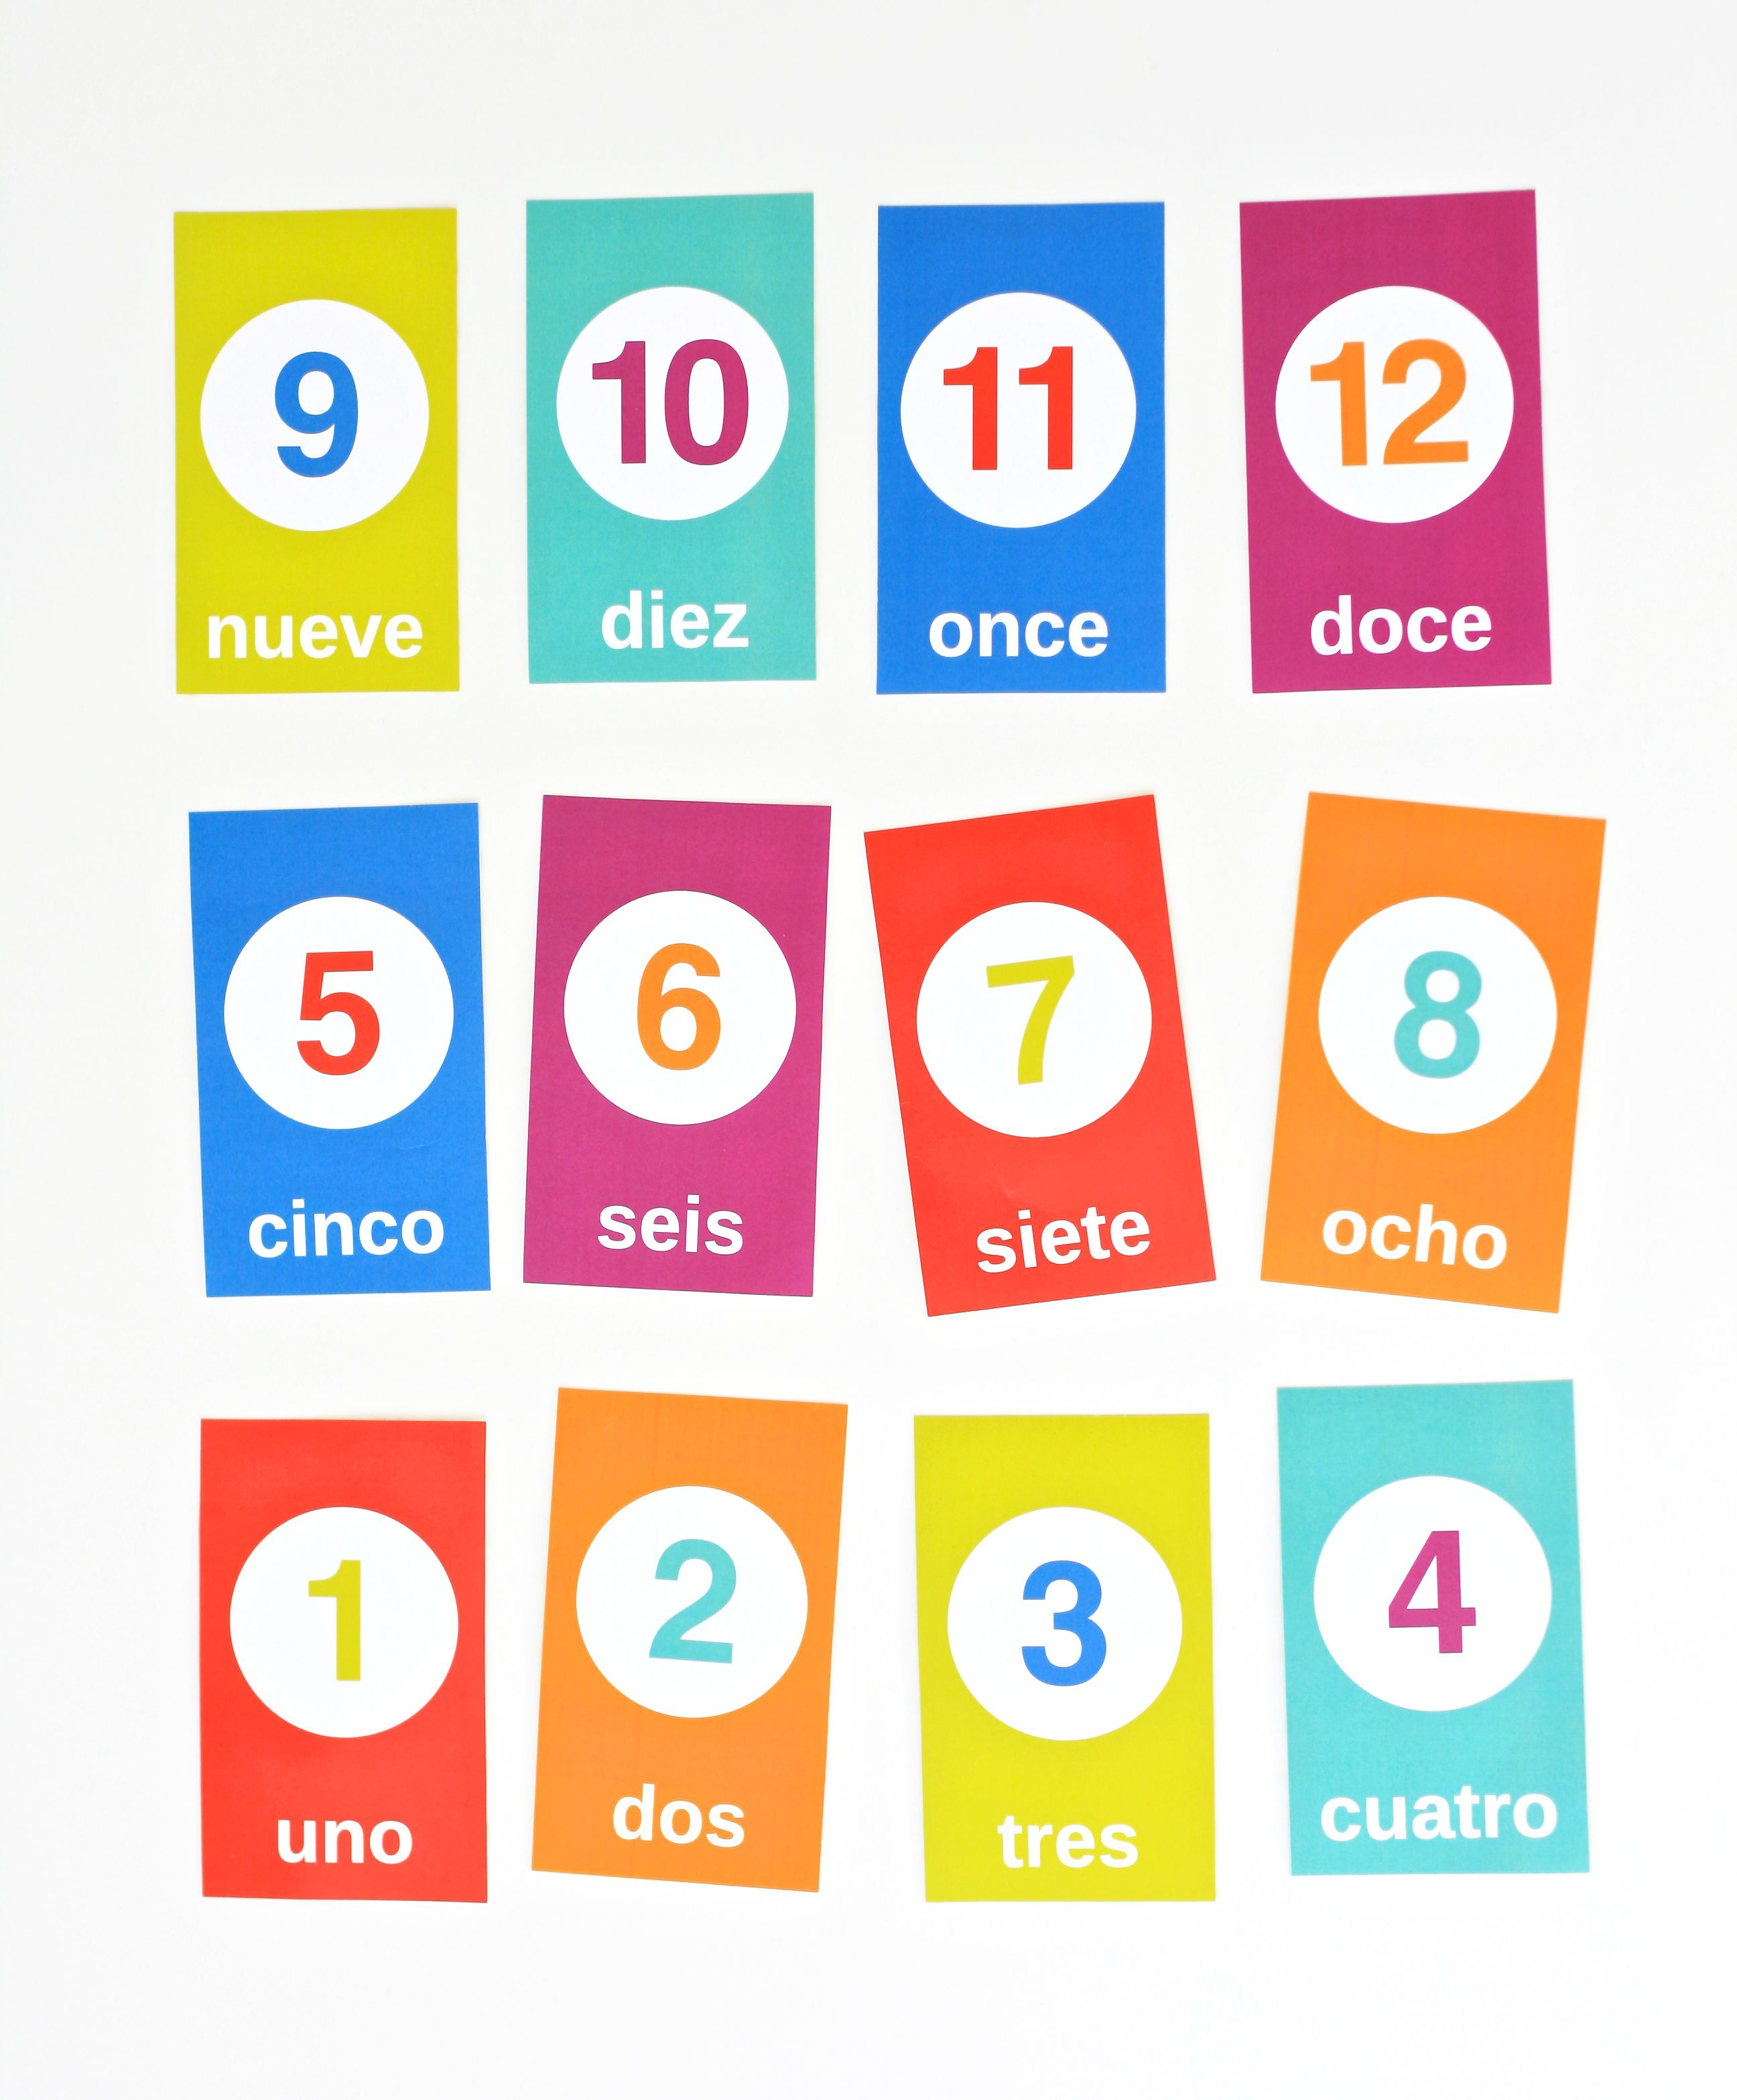 Free Flashcards For Counting In Spanish Spanish Classroom